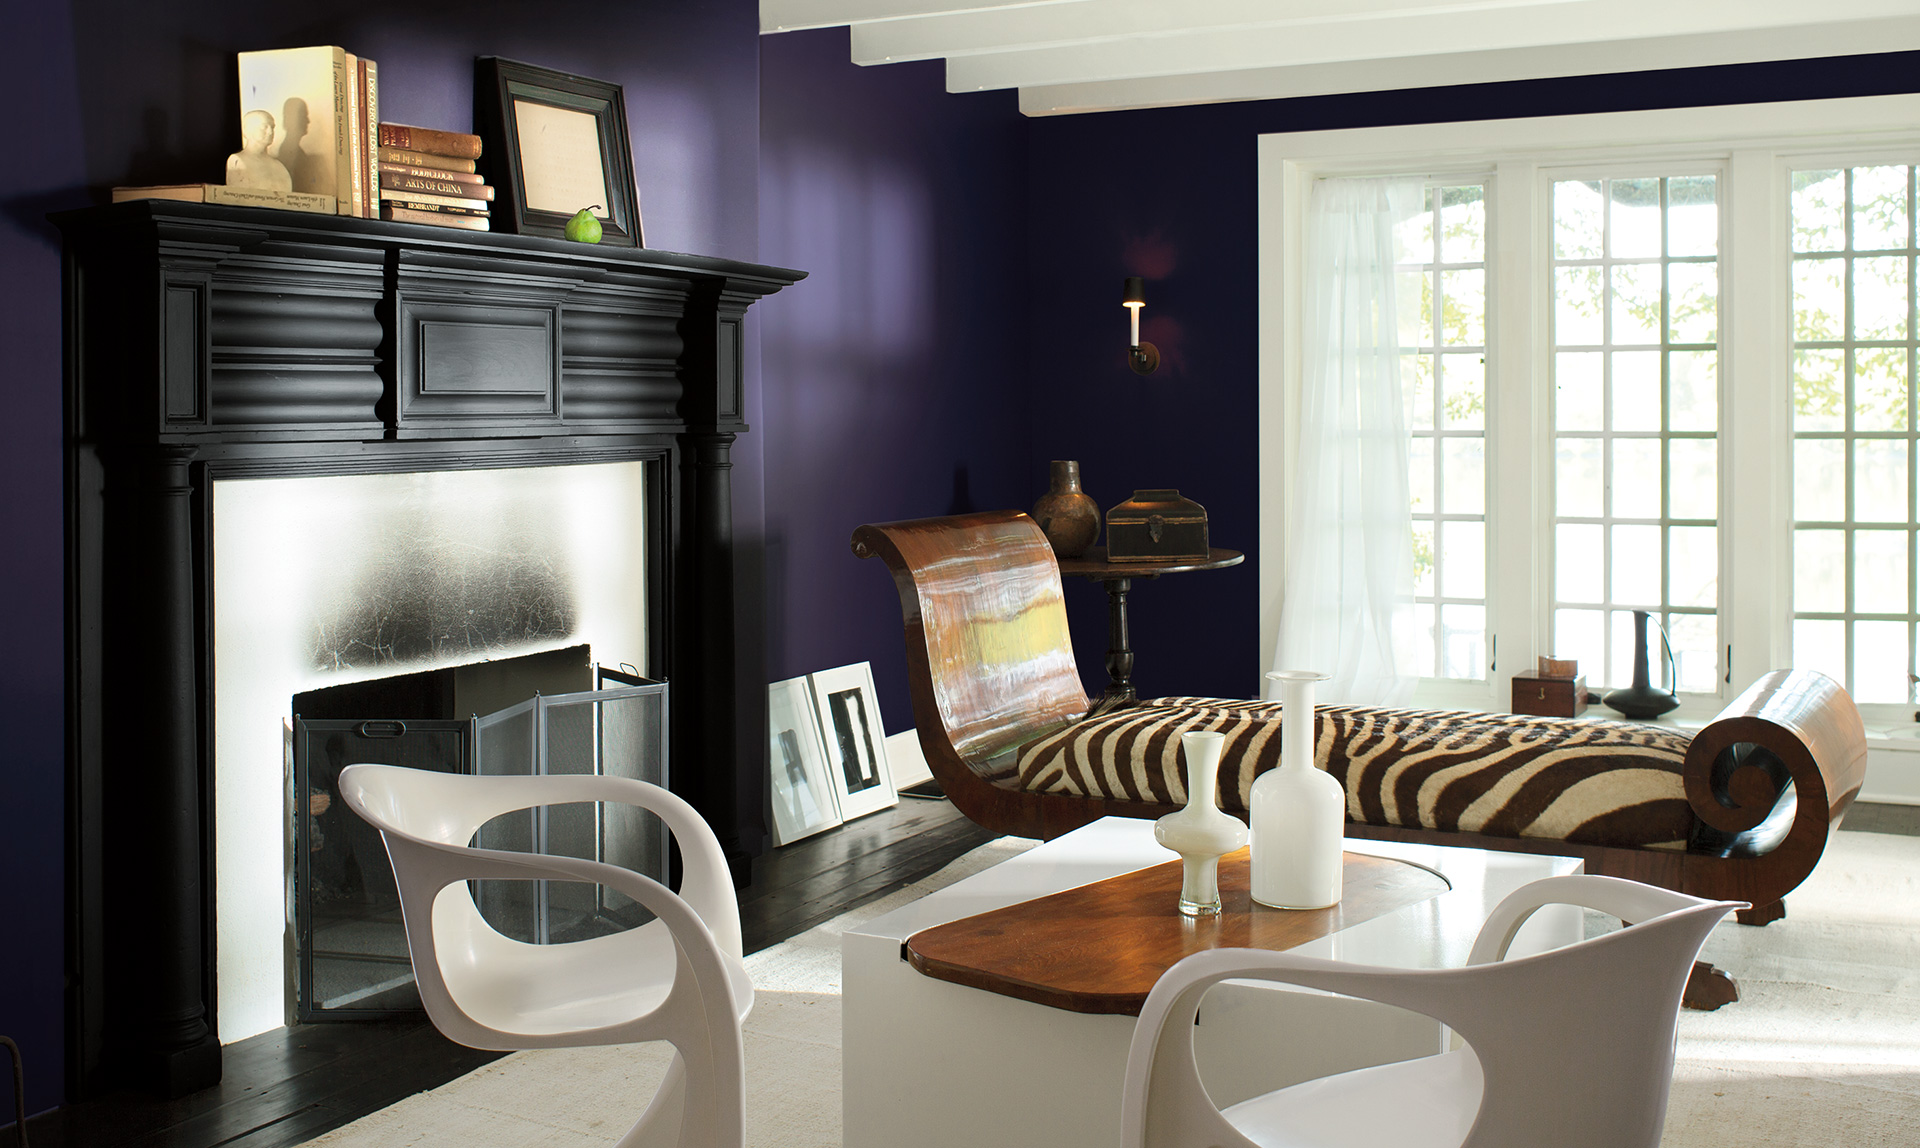 color-of-the-year-2017-benjamin-moore-shadow2lorettajwillisCommanding Great Room, Color of the Year 2017, Shadow, Benjamin MooreConfident Entry, Color of the Year 2017, Shadow, Benjamin MooreColor of the Year 2017, Shadow, Benjamin MooreDeep Purple Gloss Door Adds Drama to this Traditional Dining RoomColor of the Year 2017, Shadow, Benjamin MooreAccent Purple Added through Furnishings-Purple Velvet Sofa